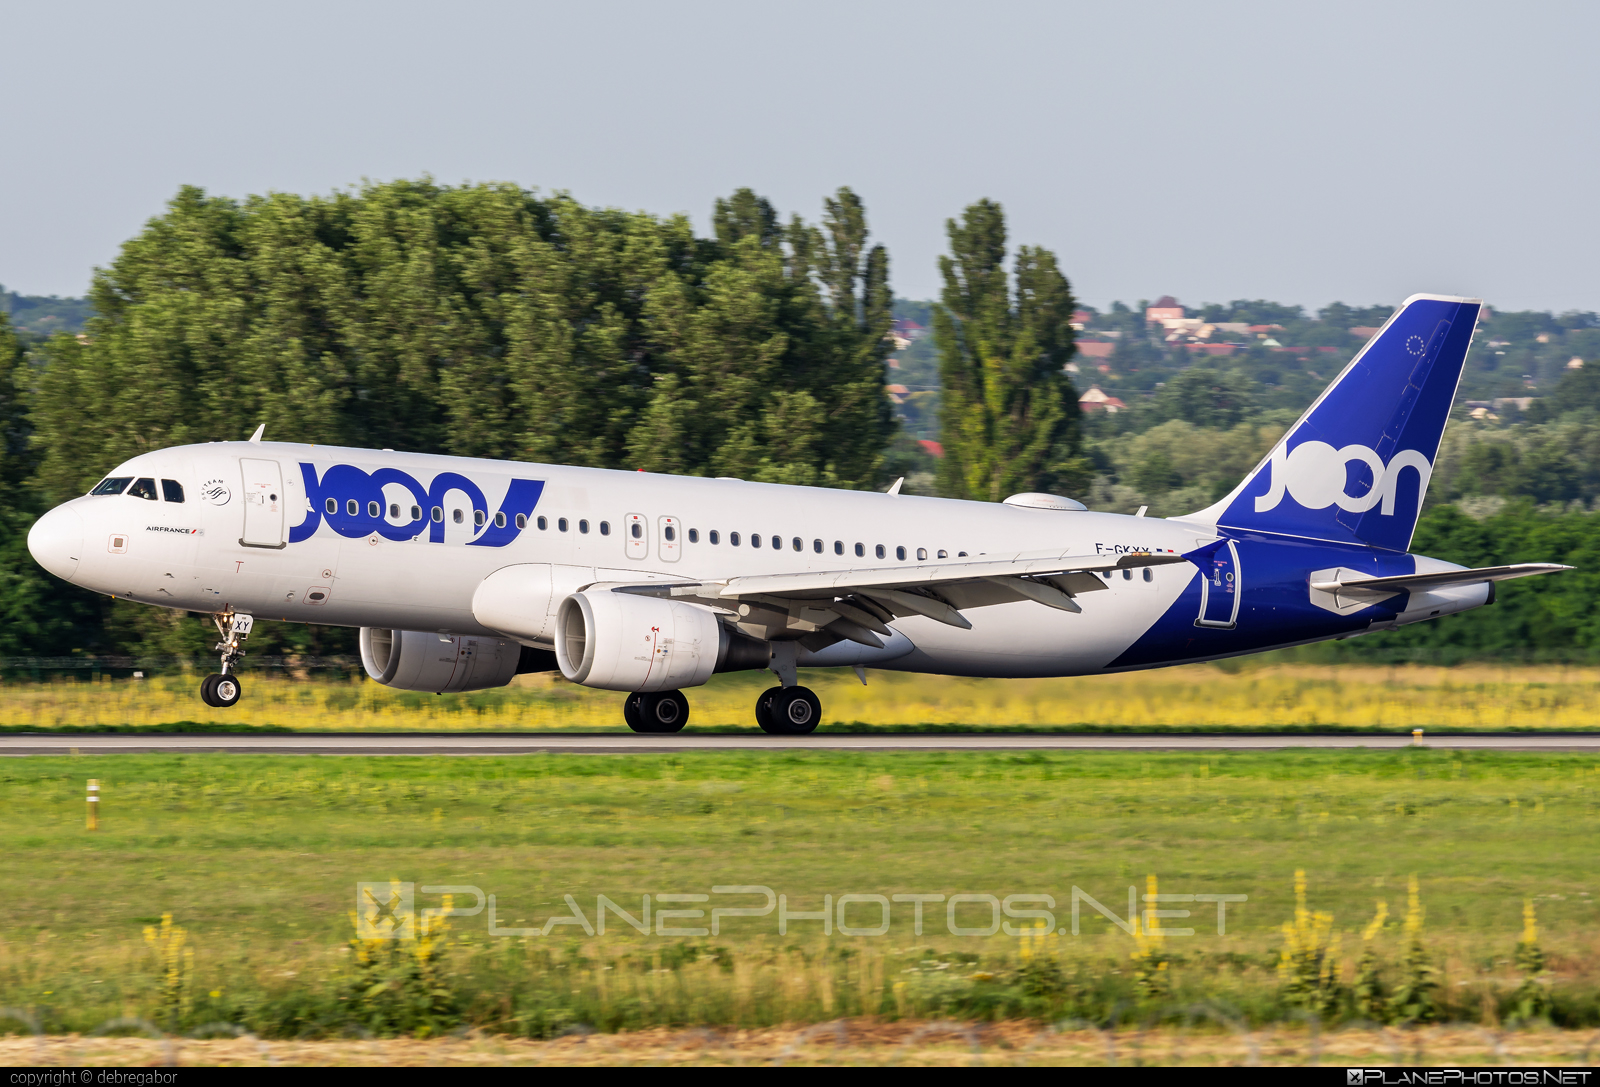 Airbus A320-214 - F-GKXY operated by Joon #a320 #a320family #airbus #airbus320 #joon